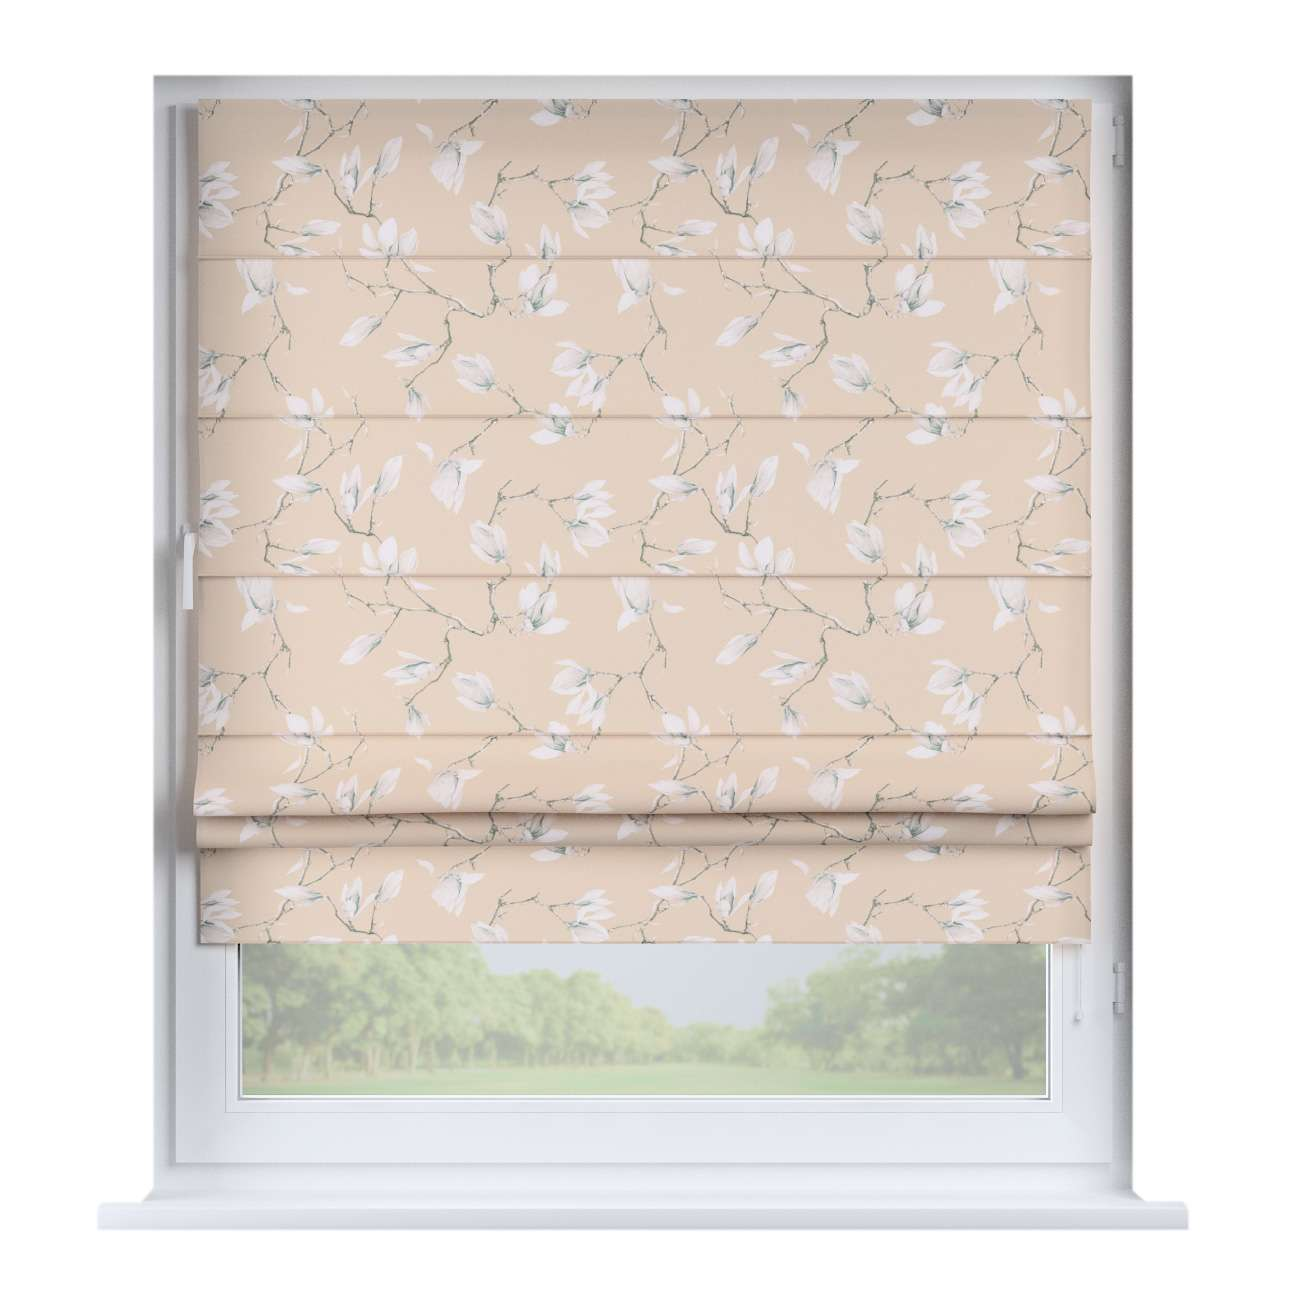 Padva roman blind  80 x 170 cm (31.5 x 67 inch) in collection Flowers, fabric: 311-12